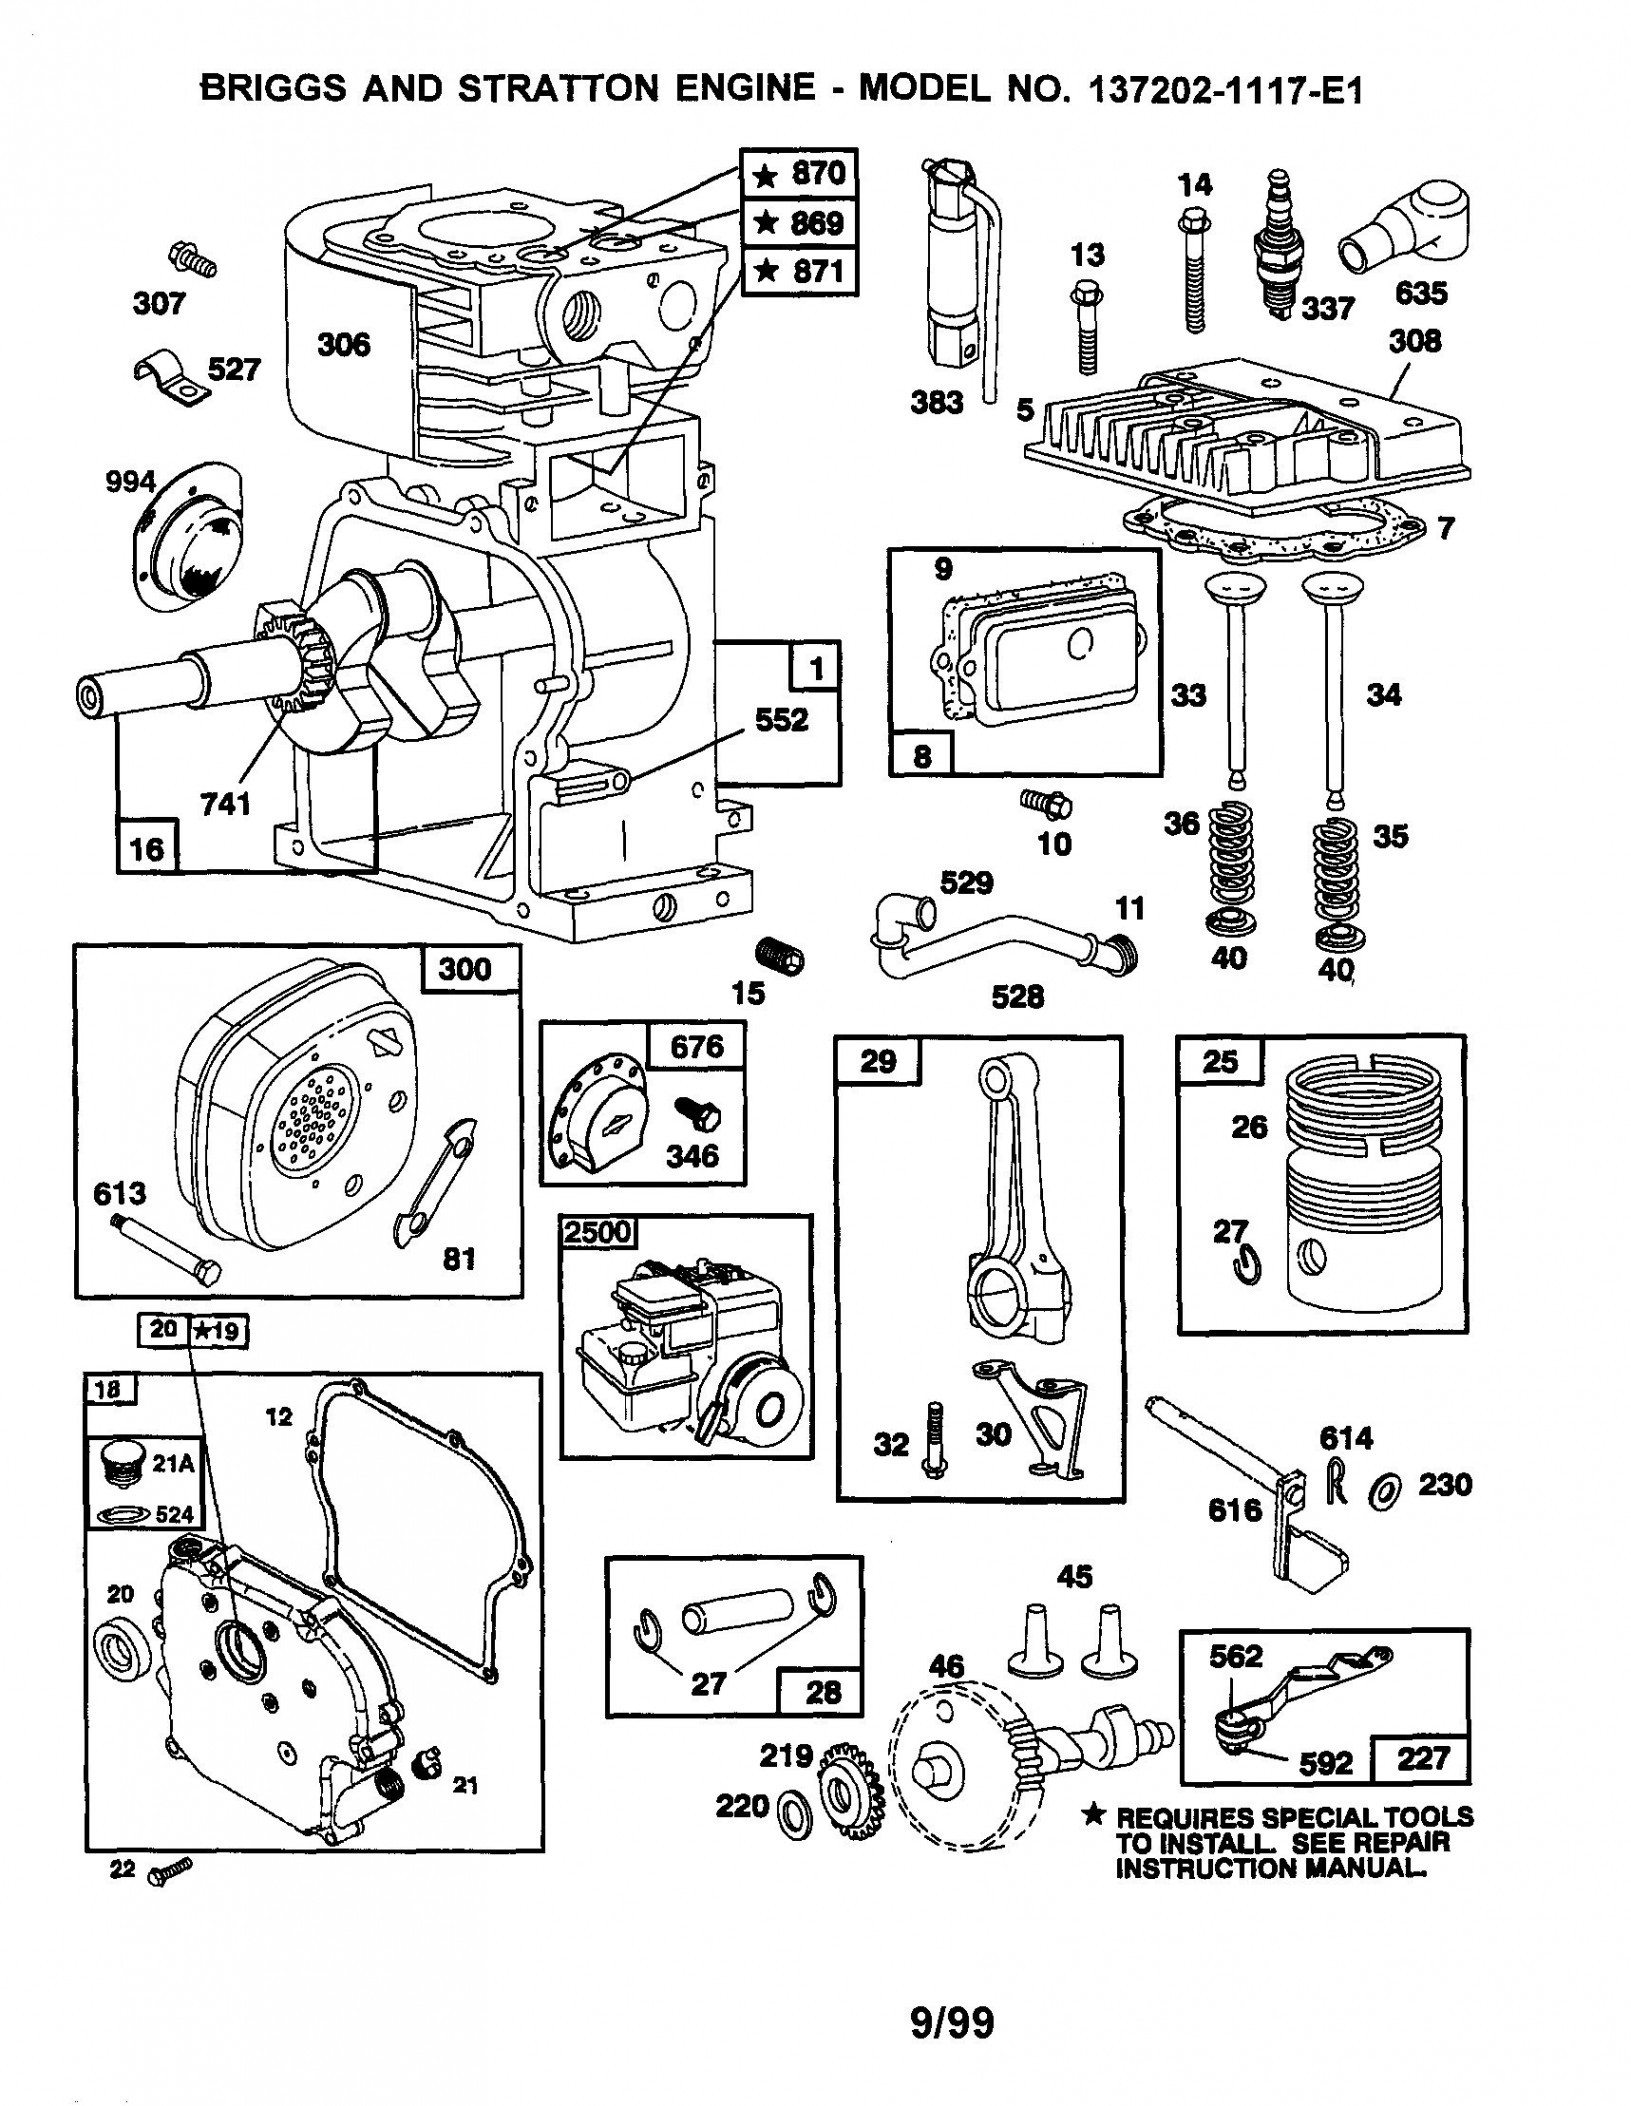 Briggs and Stratton Lawn Mower Parts Diagram Briggs and Stratton Recoil Starter assembly Diagram – Awesome Of Briggs and Stratton Lawn Mower Parts Diagram Briggs and Stratton Recoil Starter assembly Diagram – Awesome